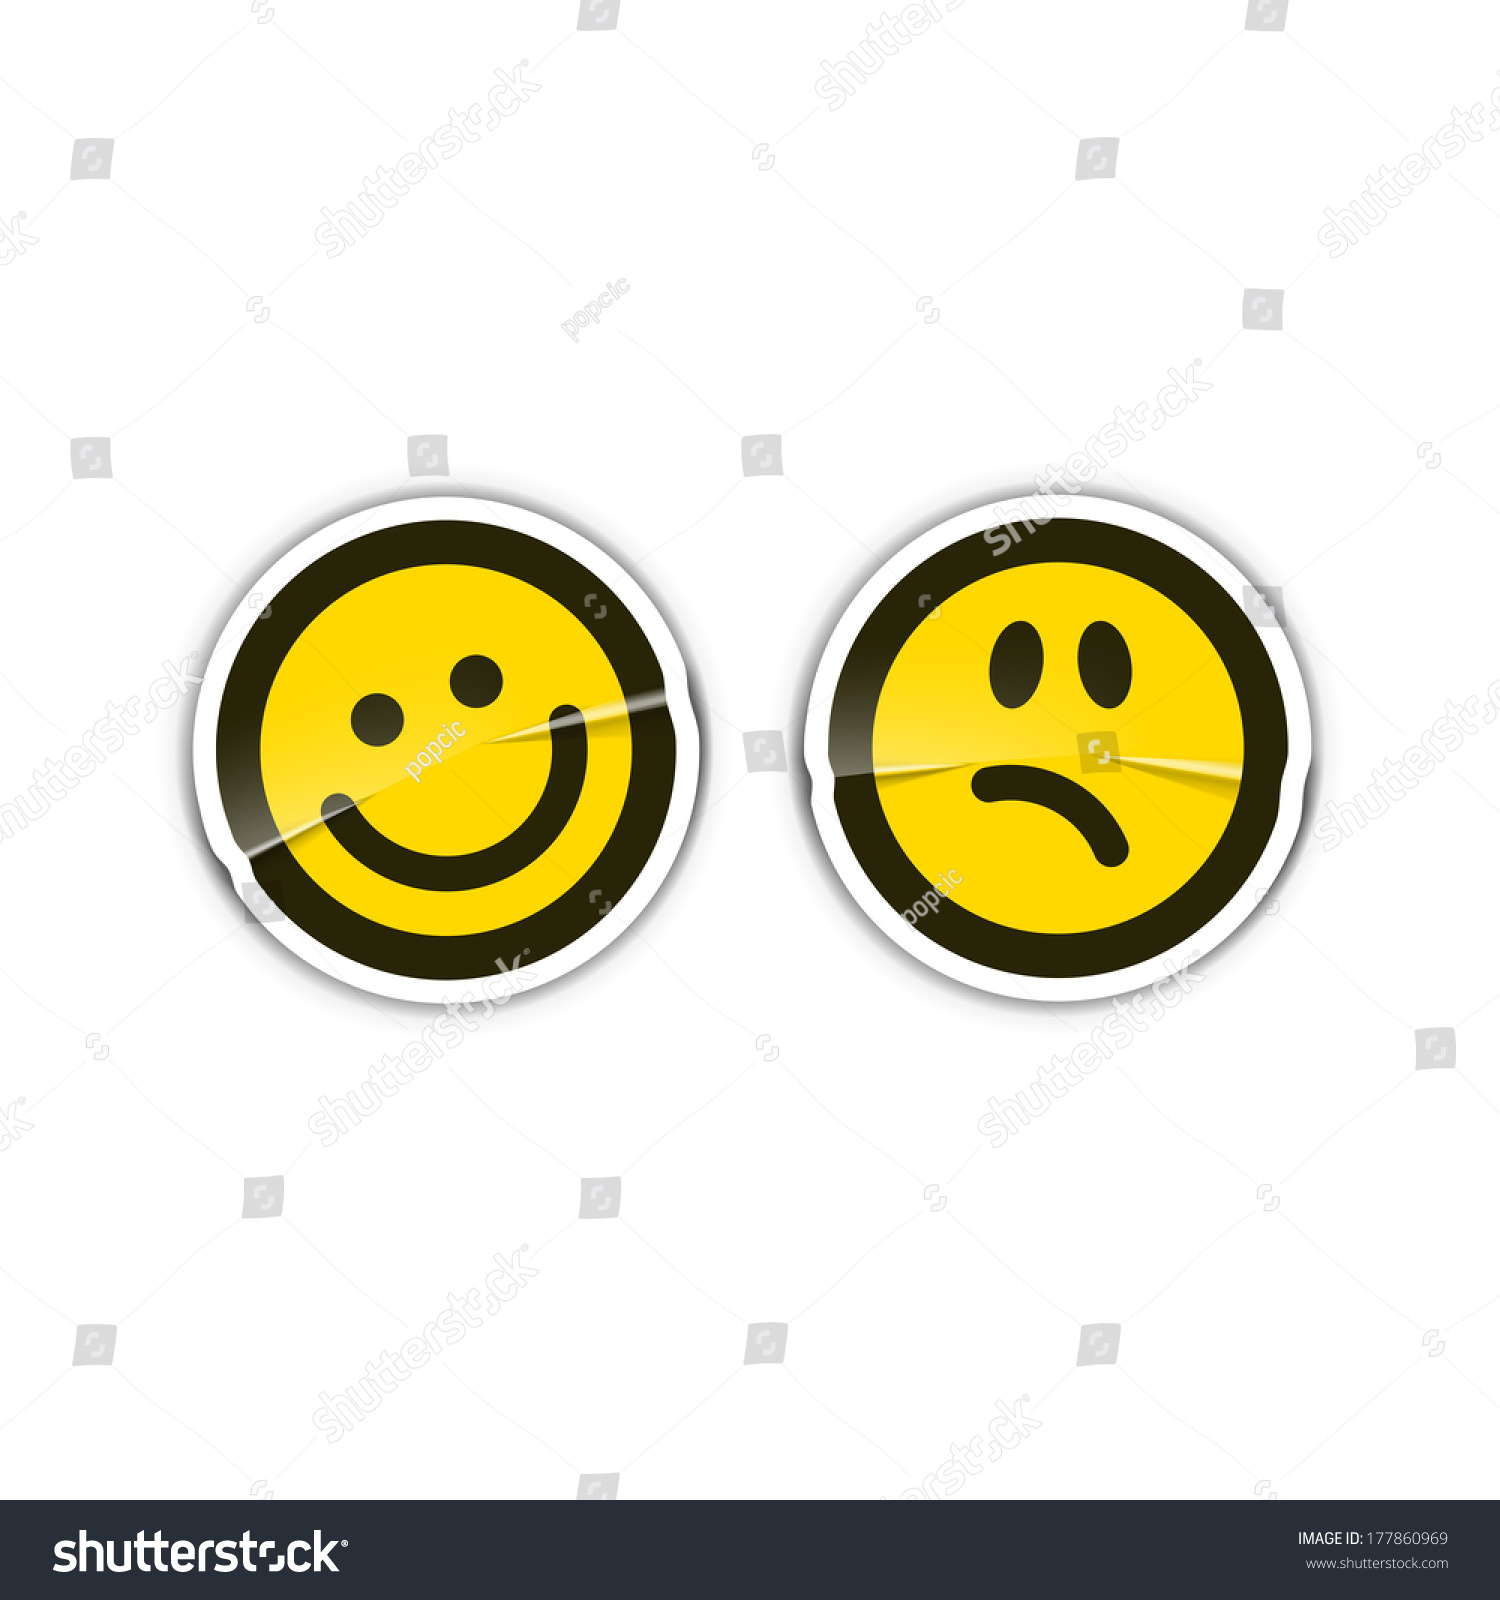 Happy Sad Emotion Stickers Stock Vector (2018) 177860969 - Shutterstock for Sad Stickers For Facebook Chat  51ane